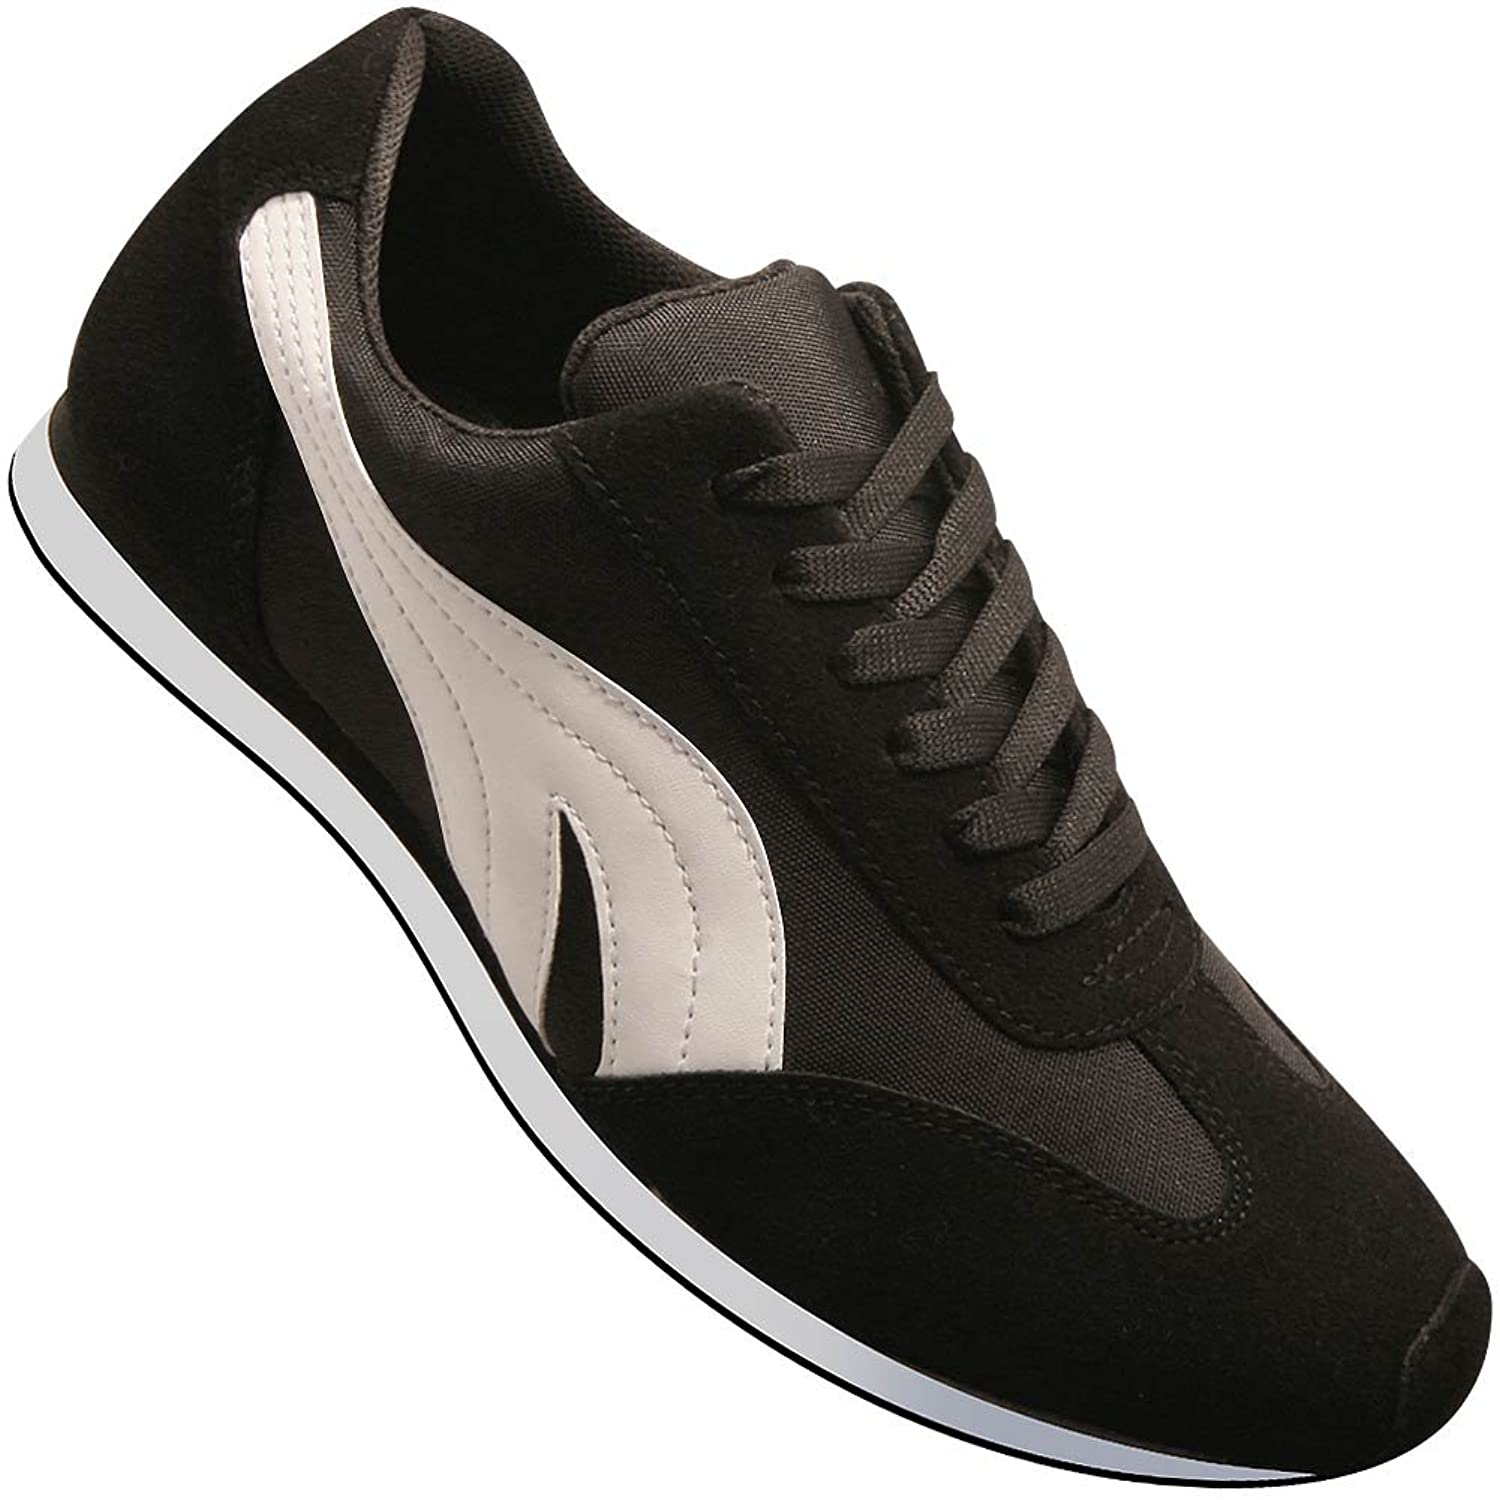 1960s Mens Shoes- Retro, Mod, Vintage Inspired Aris Allen Mens Retro Runner Dance Sneaker in Black and White $59.95 AT vintagedancer.com